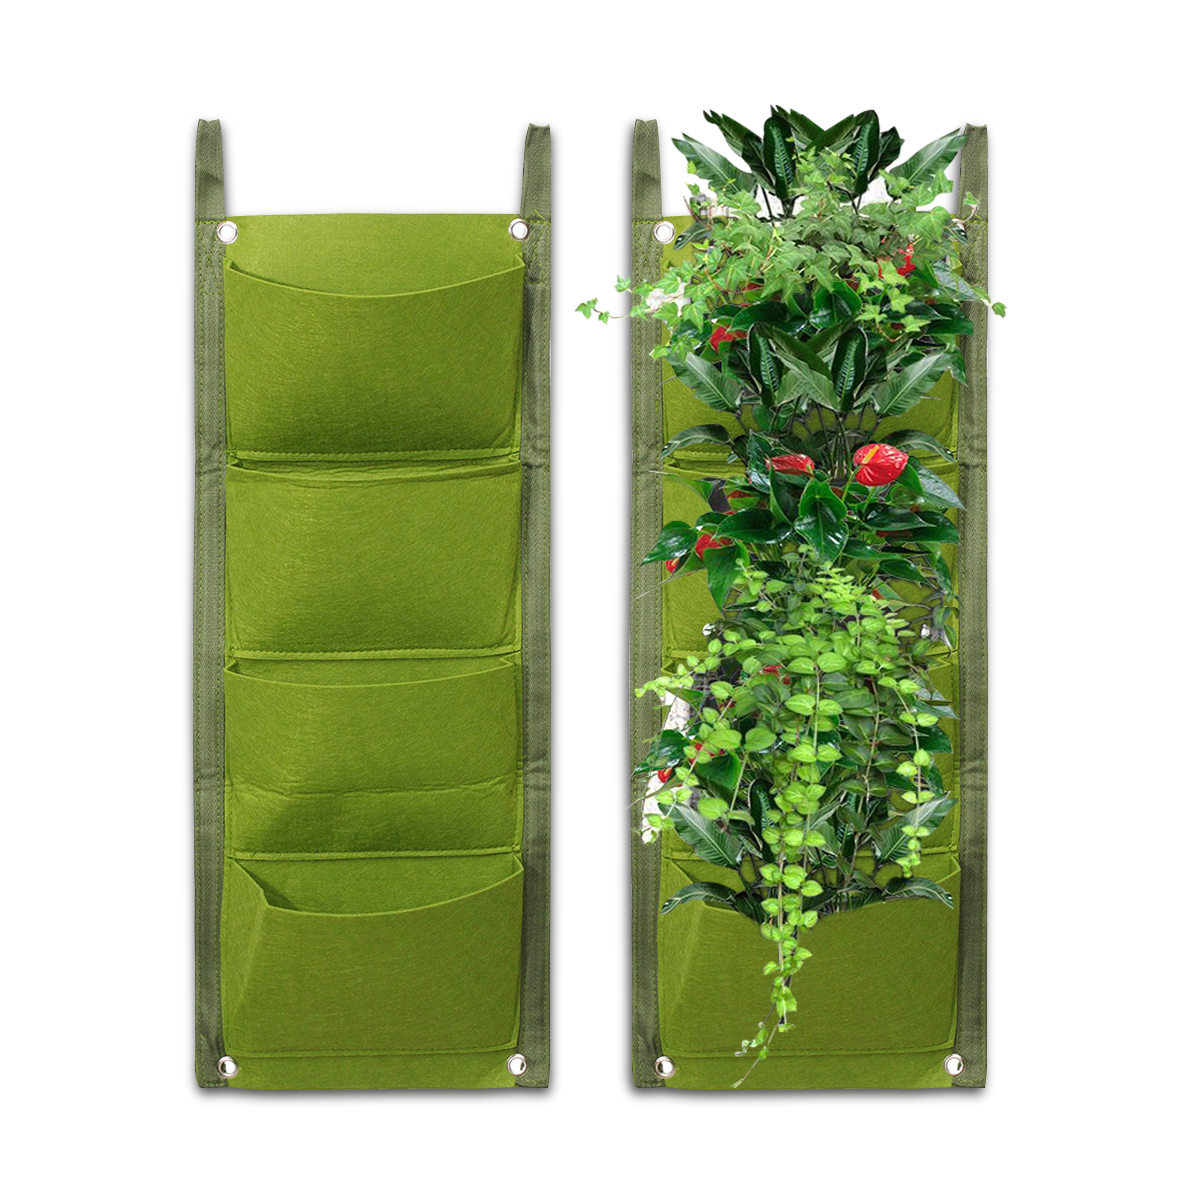 4 Pockets Hanging Vertical Garden Wall Planter  Flower Pouch Basket Indoor/Outdoor Wall Mount Balcony Yard Plant Grow Bags For Herbs Vegetables Flowers Yard Garden Home Decoration